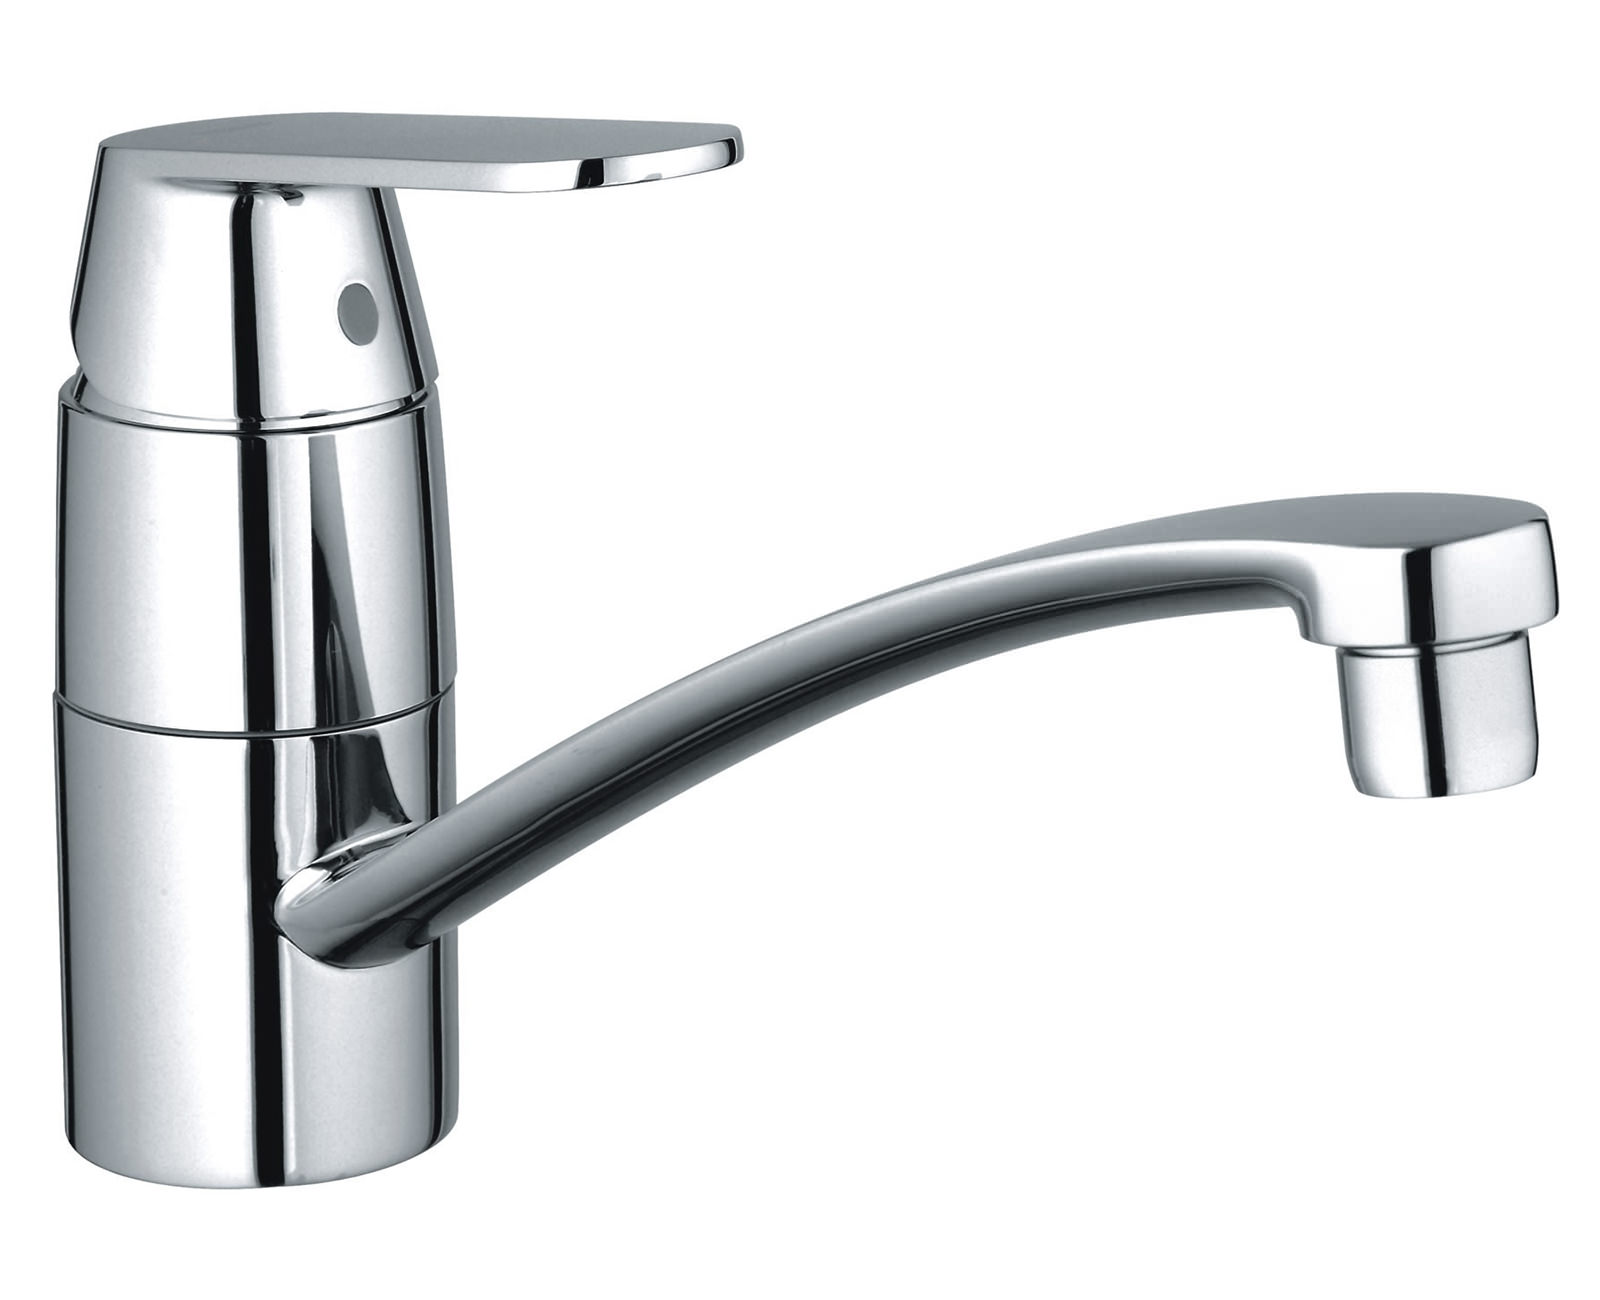 grohe eurosmart cosmopolitan low spout sink mixer tap 32842 000 32842000. Black Bedroom Furniture Sets. Home Design Ideas